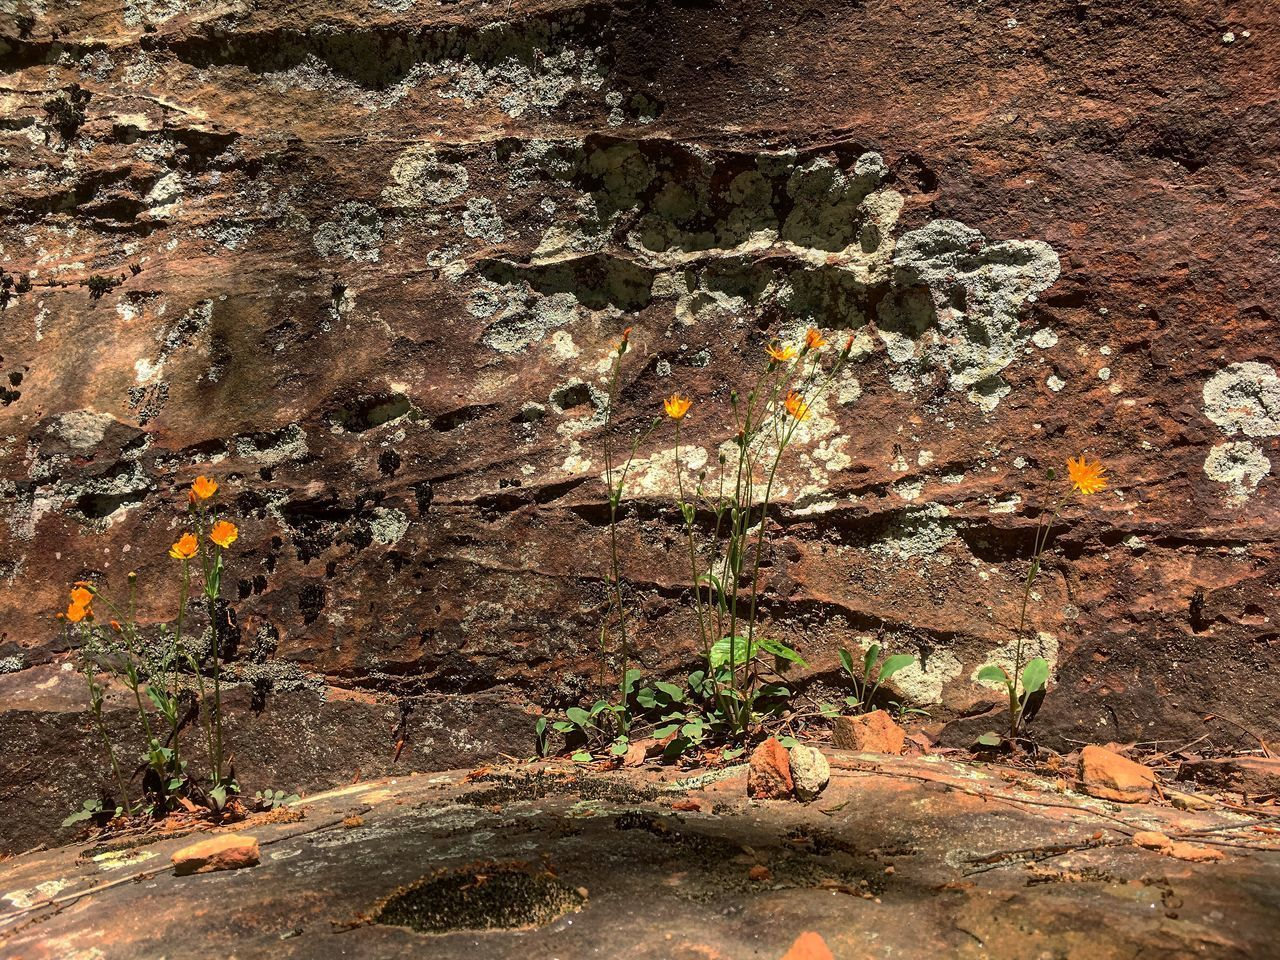 no people, day, nature, textured, plant, growth, outdoors, solid, close-up, rock, rock - object, wall - building feature, weathered, wall, land, tree, full frame, old, built structure, brown